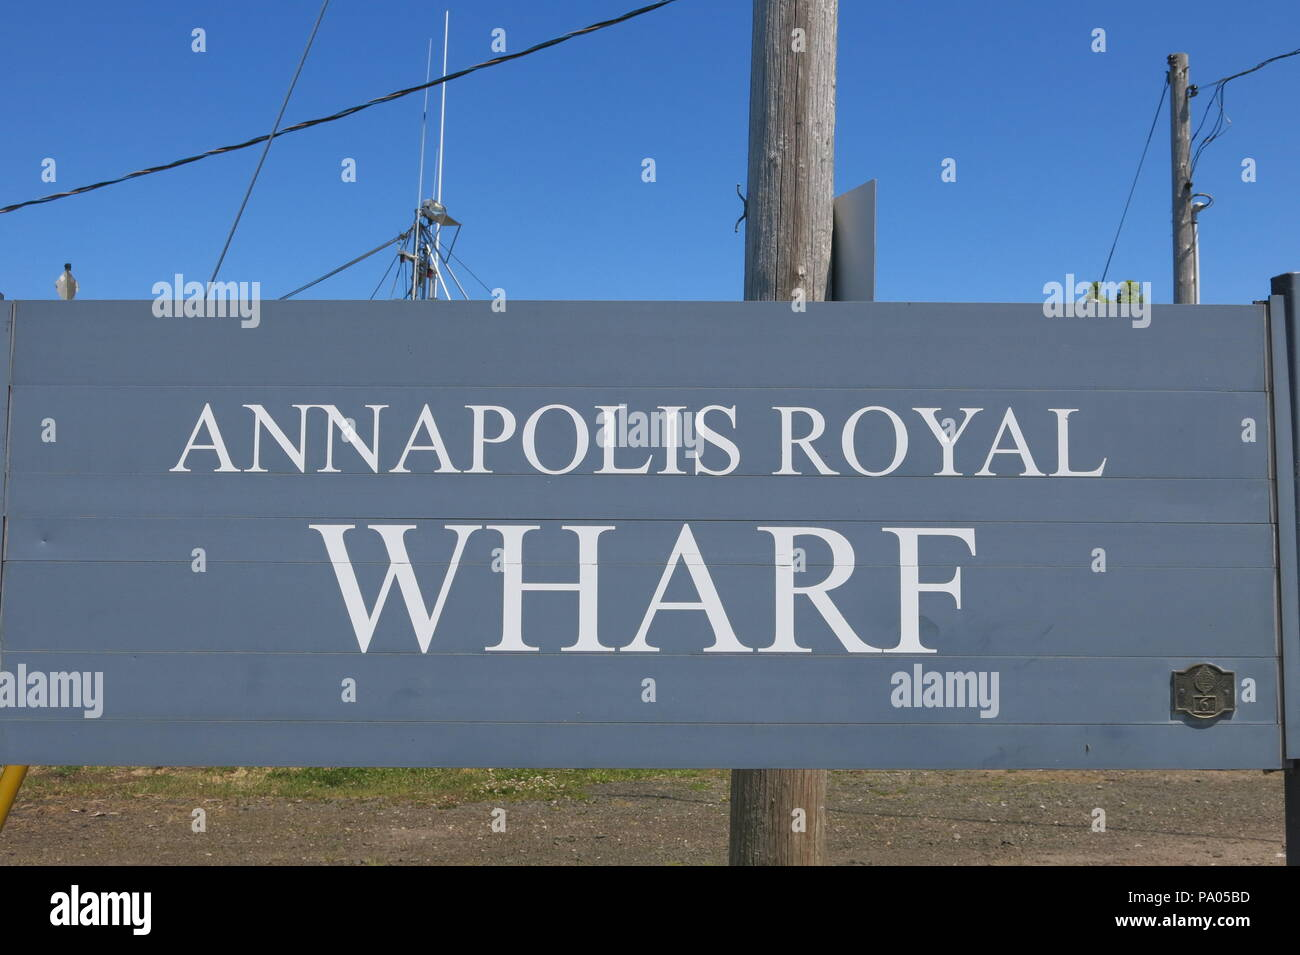 White capital letters on a smart grey wooden board signpost that you're at Annapolis Royal Wharf, Nova Scotia, Canada - Stock Image